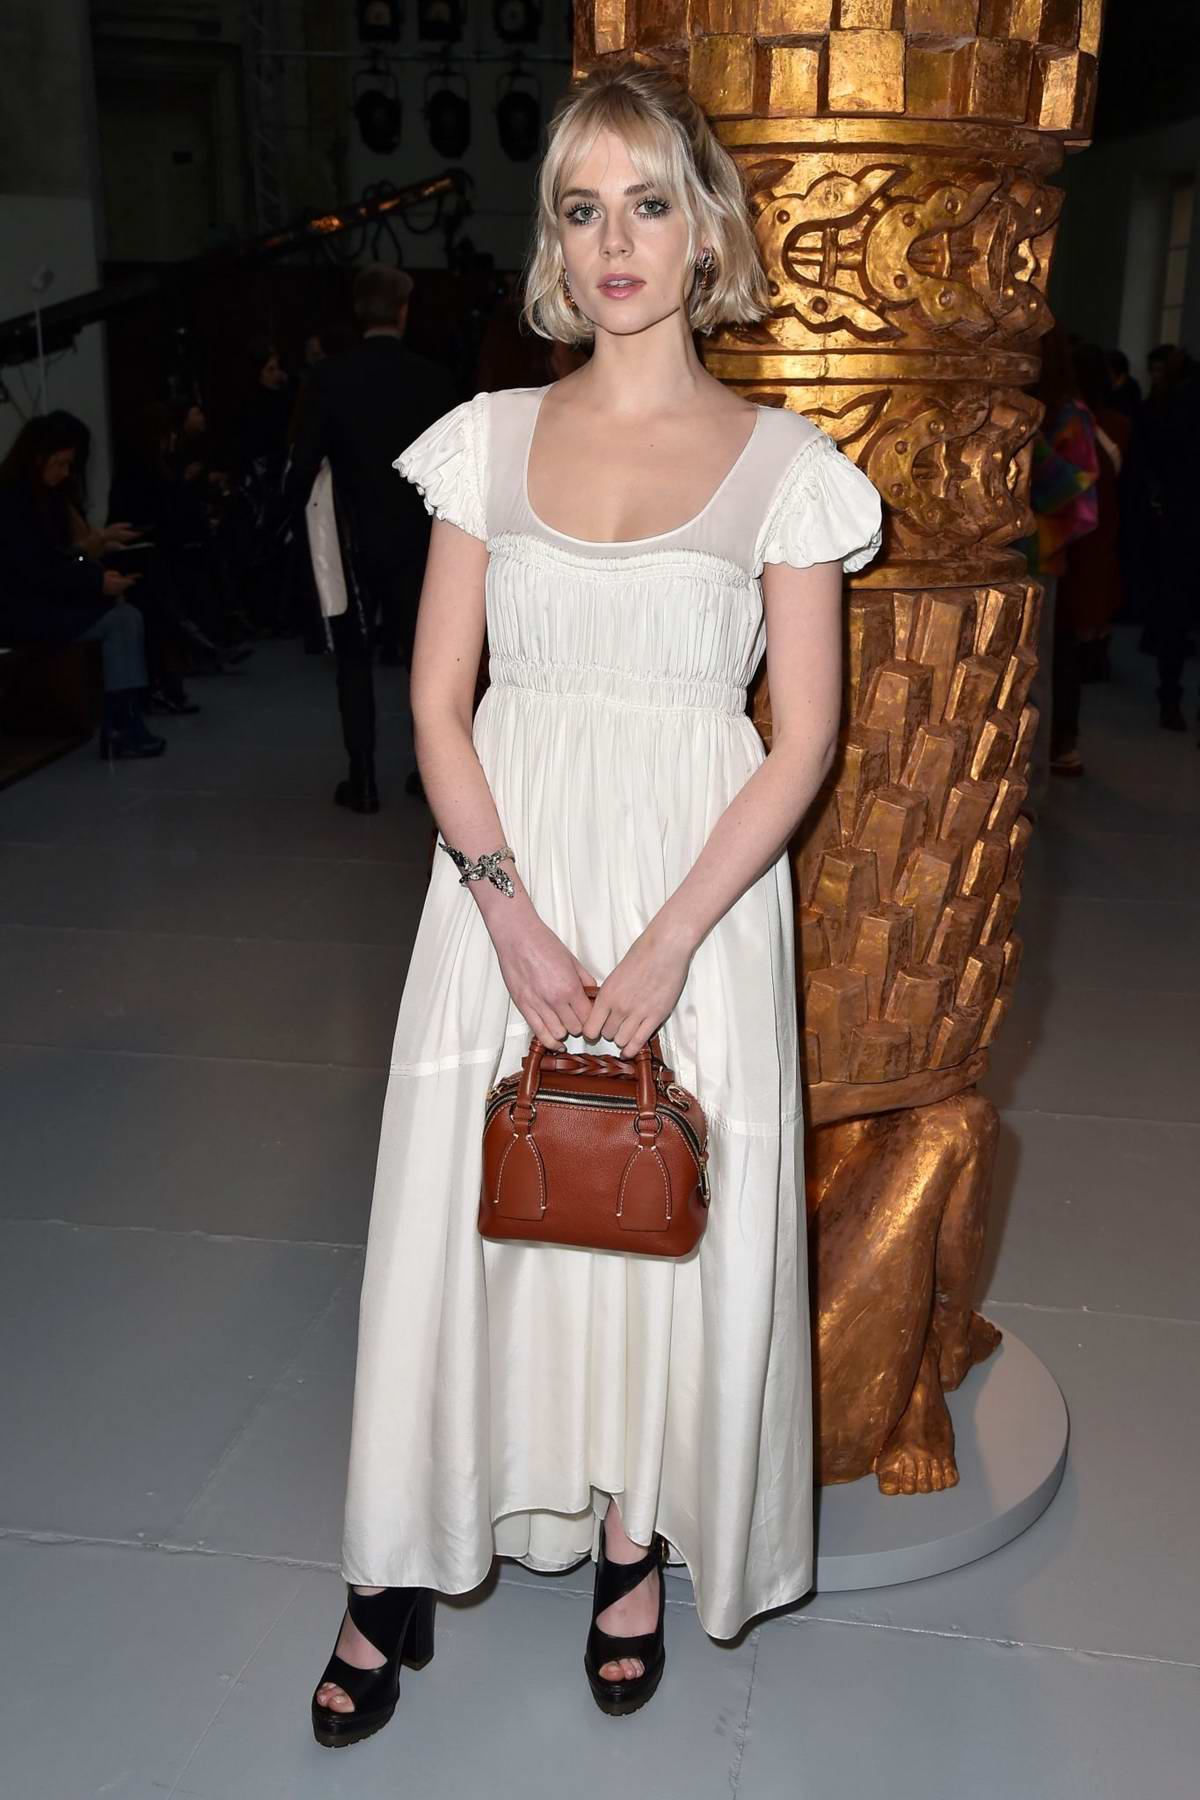 Lucy Boynton attends the Chloe show, F/W 2020 during Paris Fashion Week in Paris, France